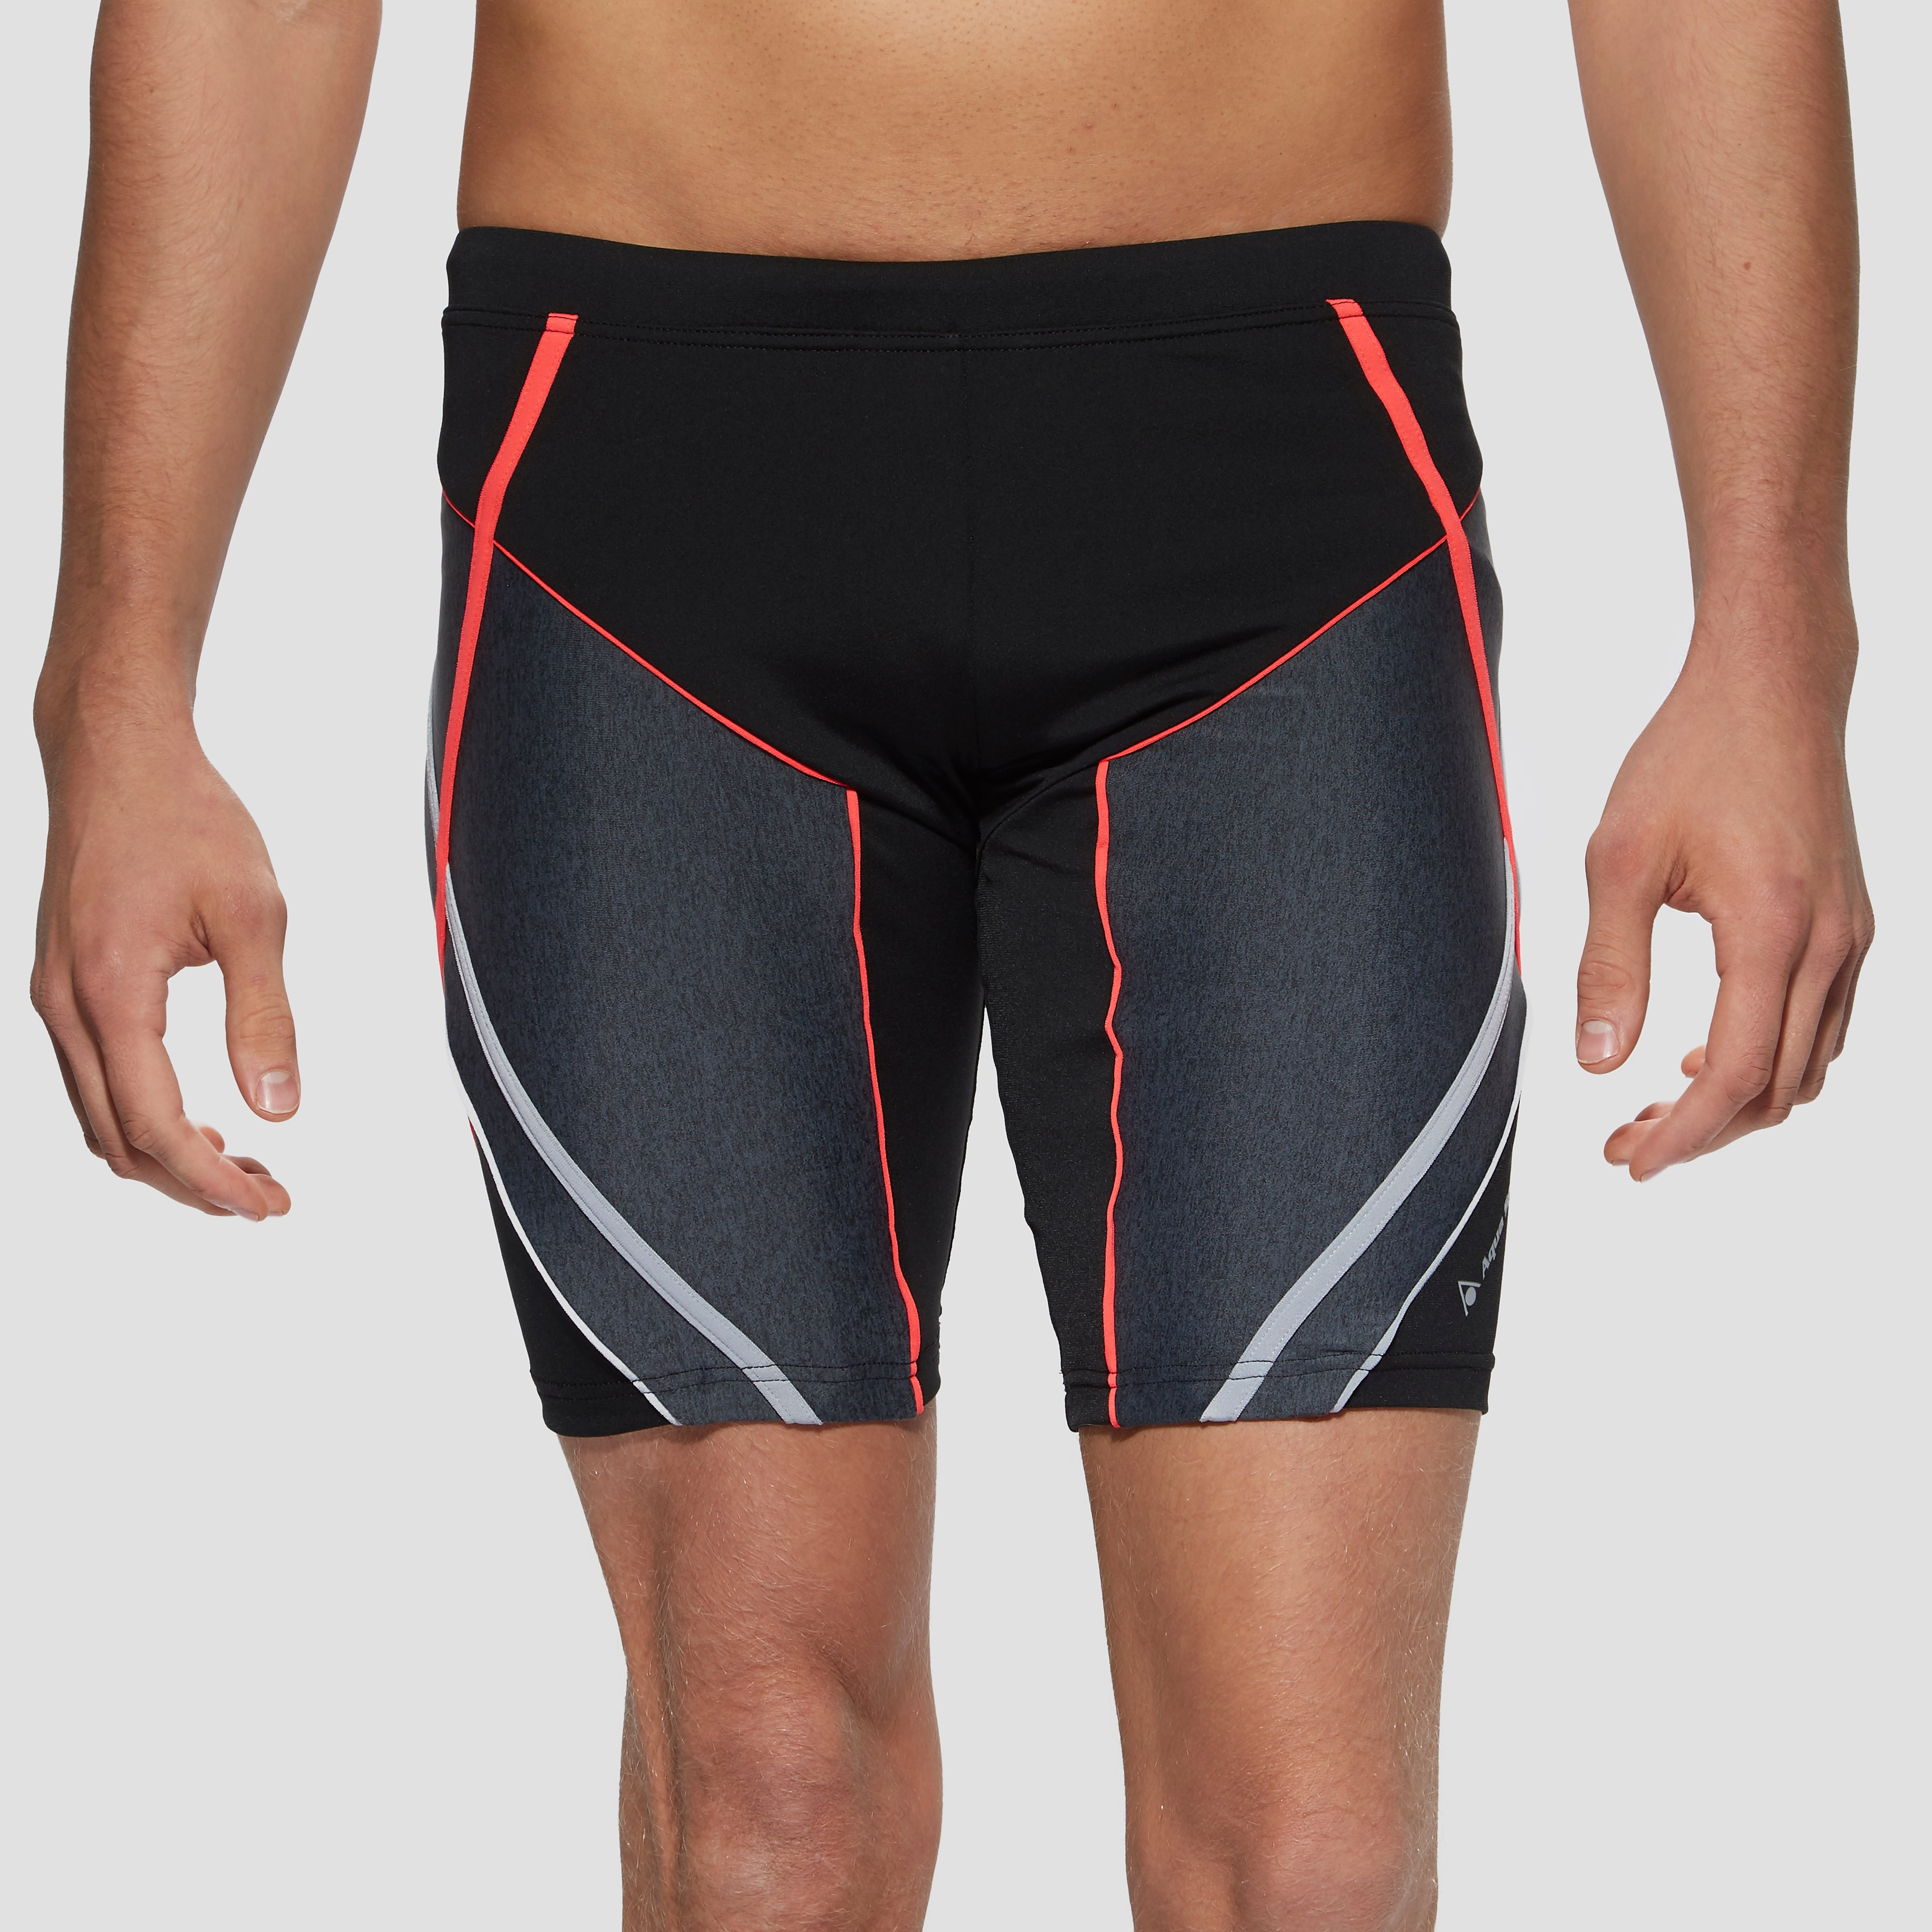 Aqua Sphere Aston Men's Swimming Jammers